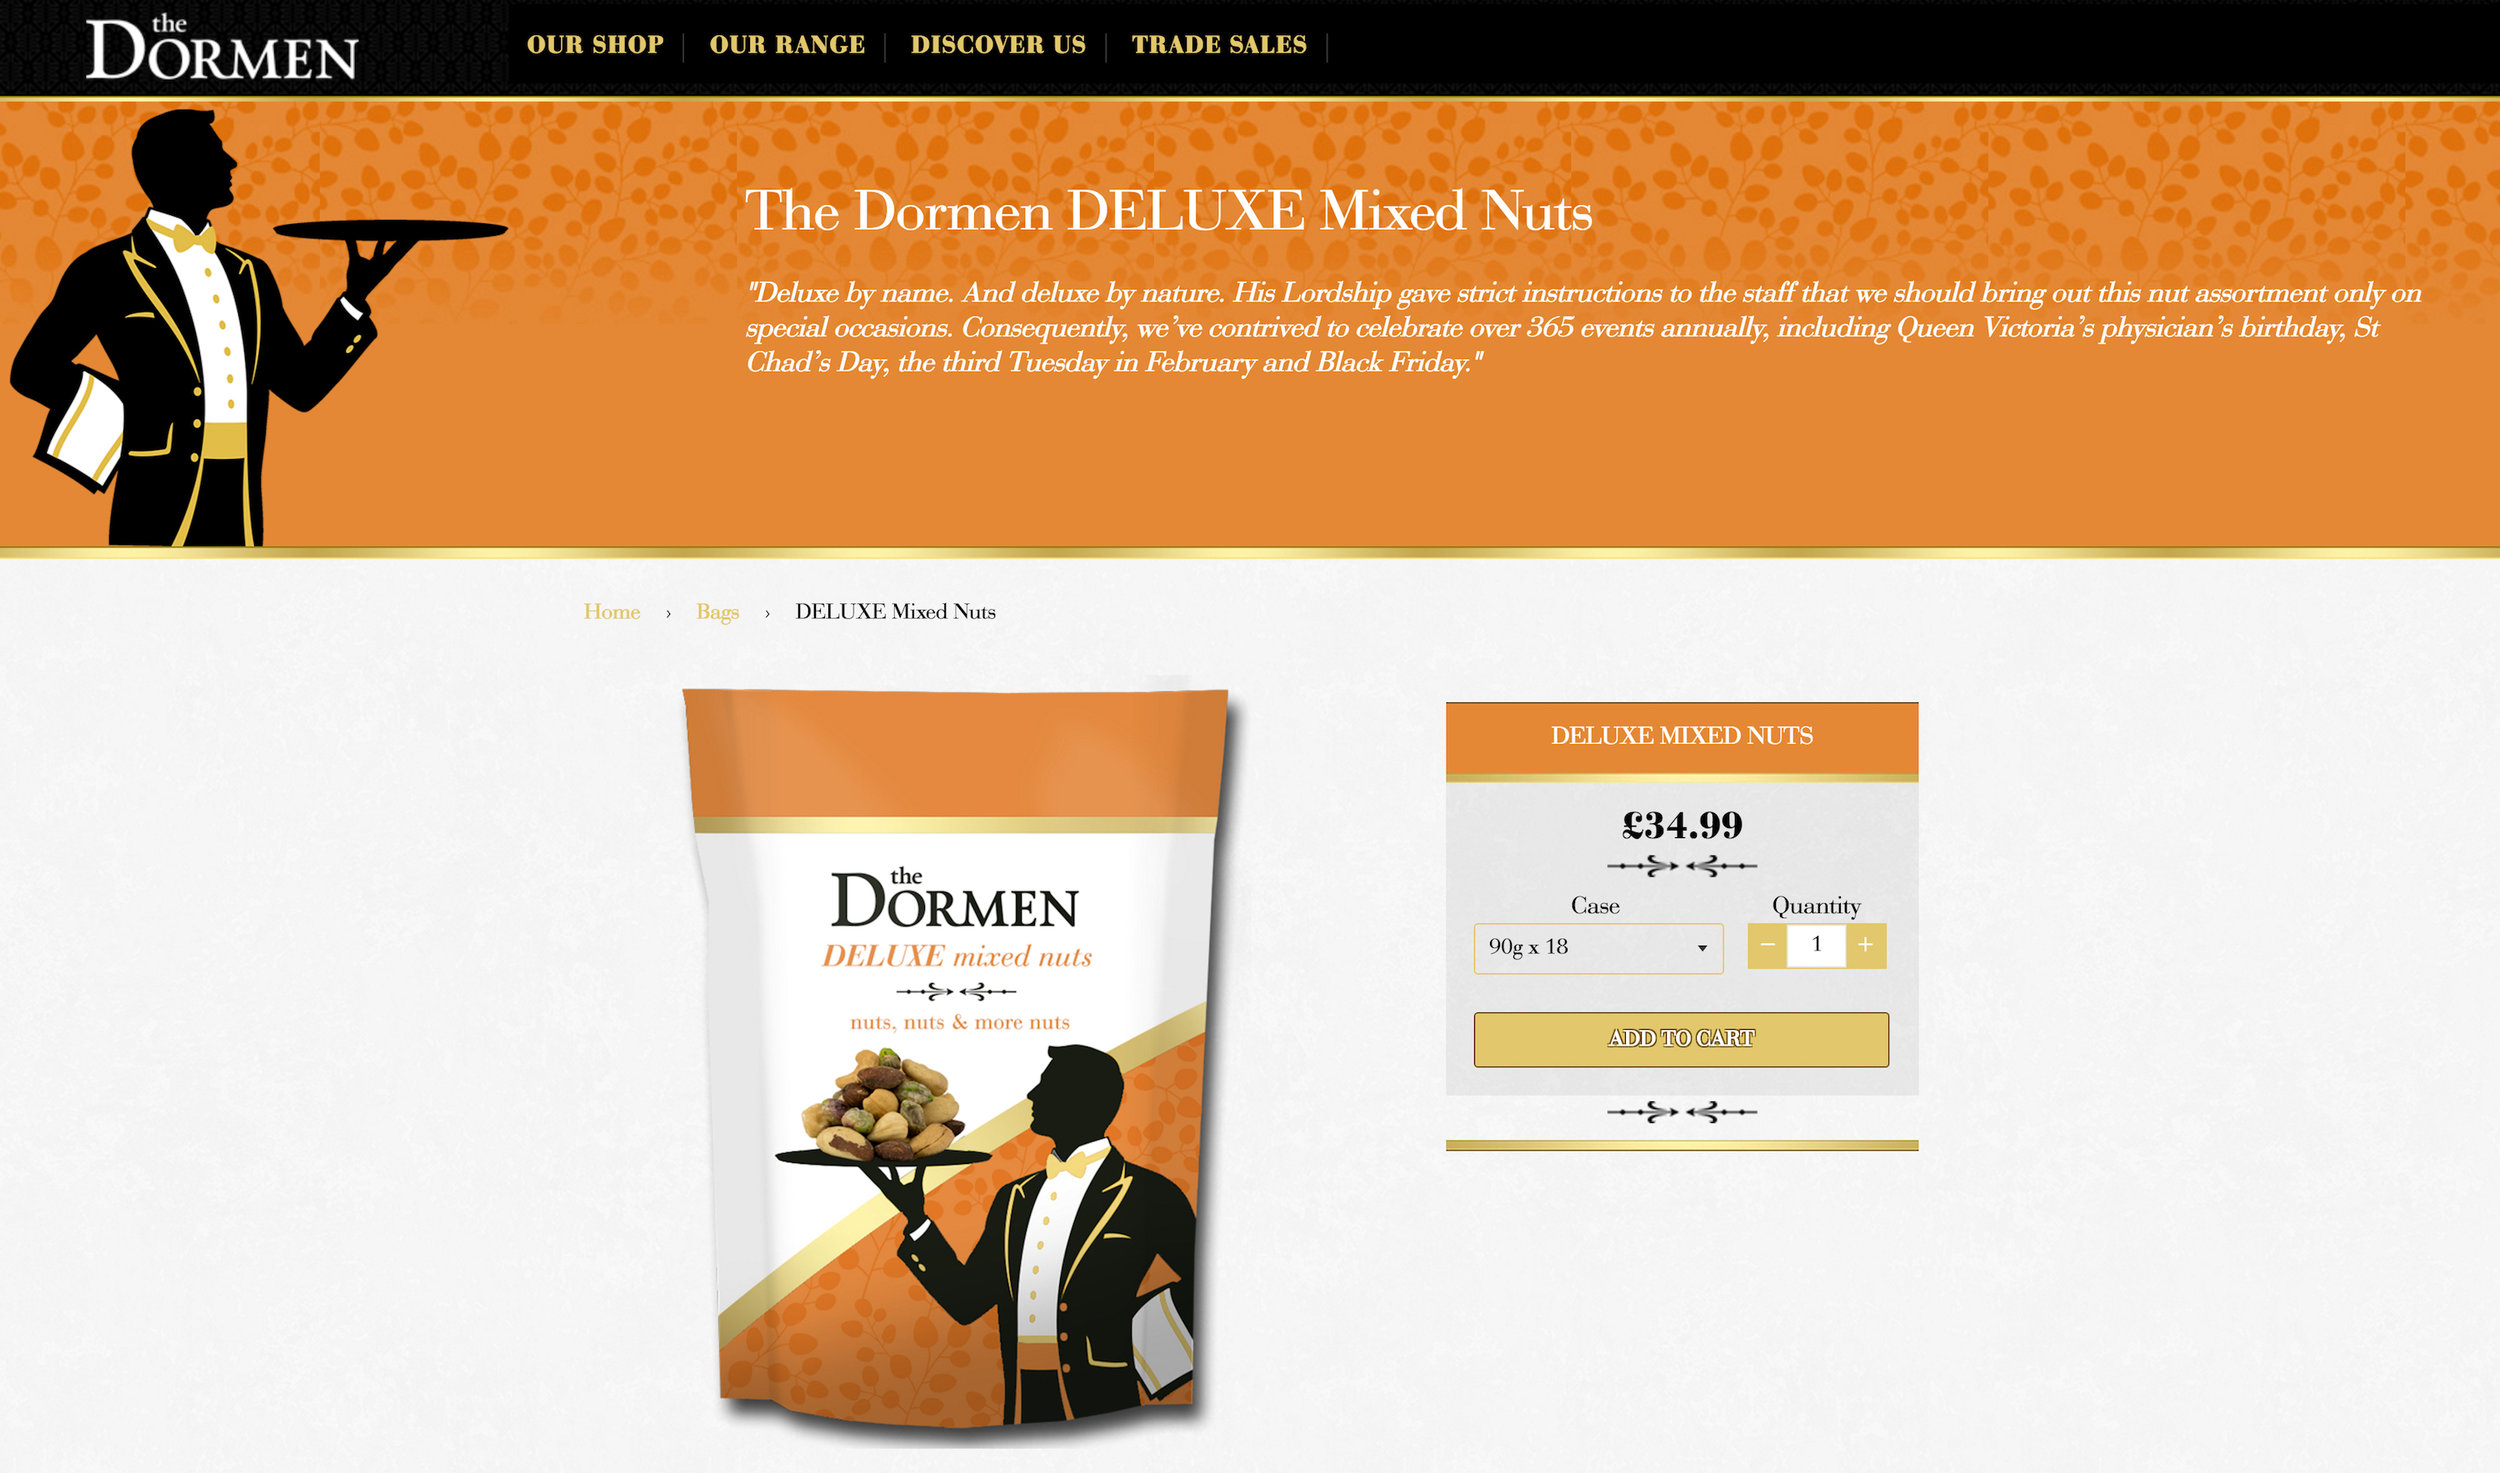 Dormen Deluxe Mixed Nuts.jpg